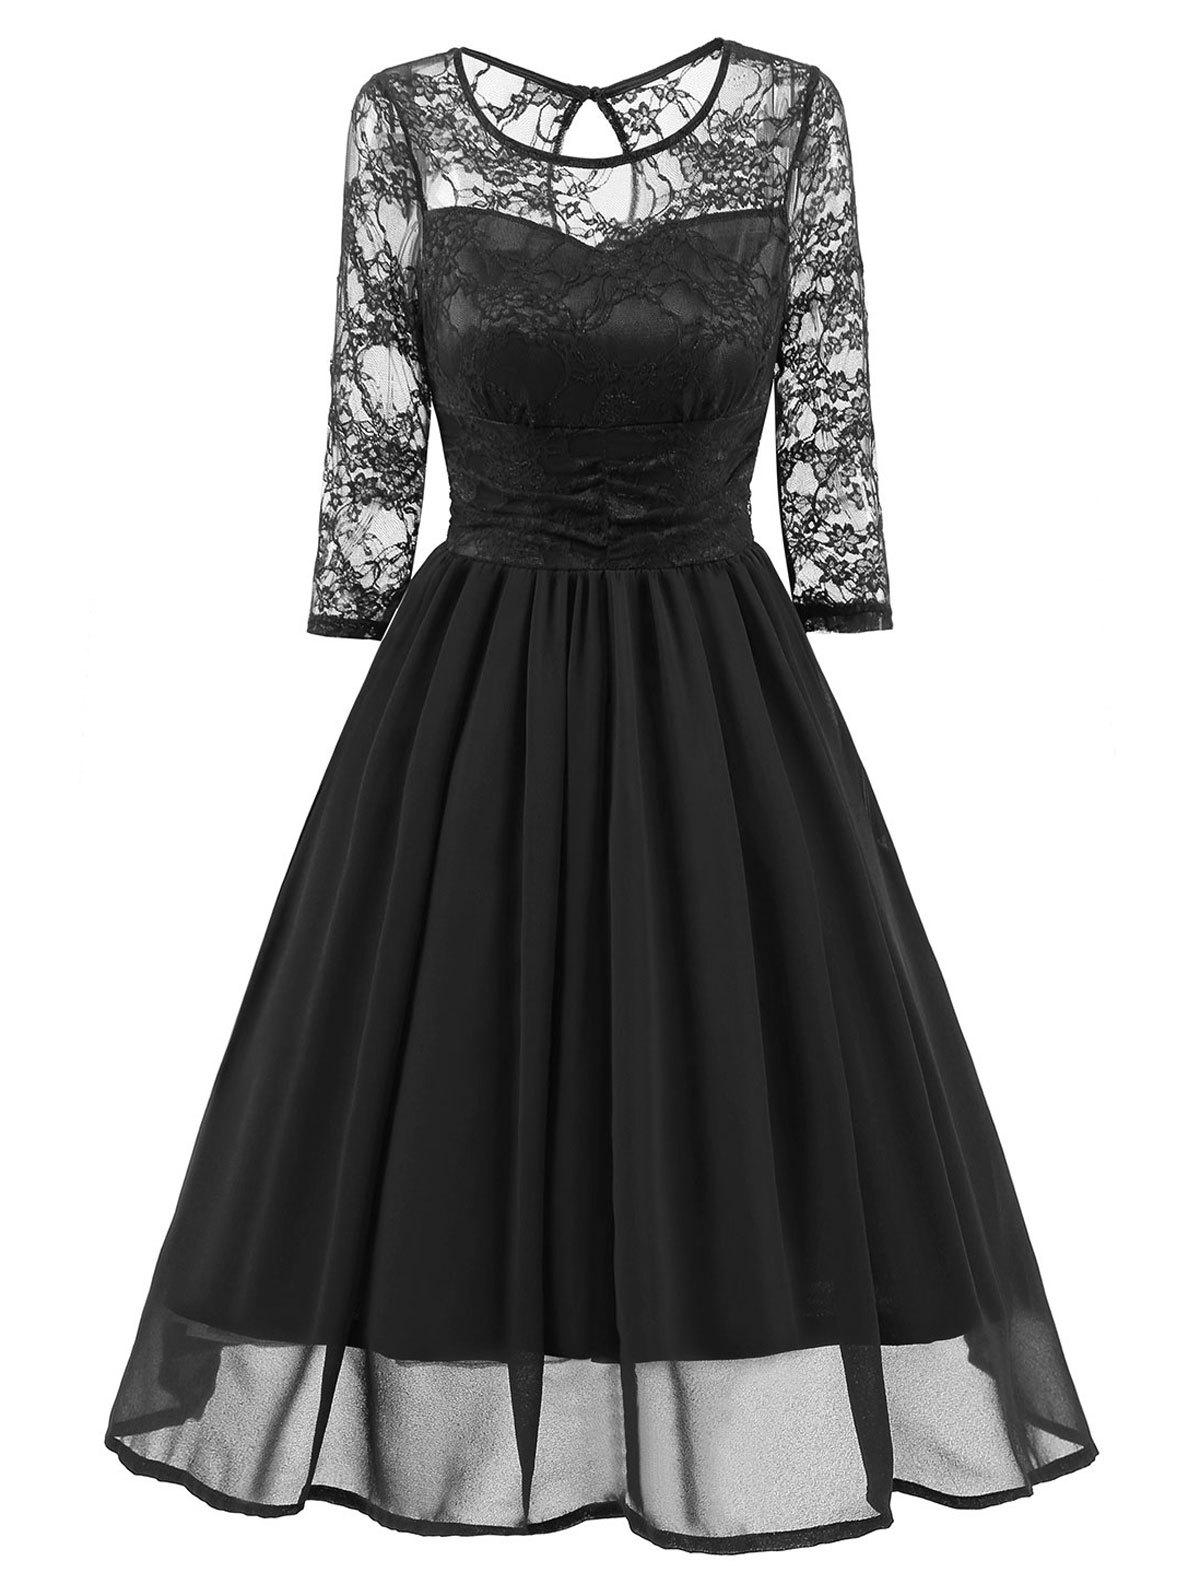 Lace Mesh Insert Vintage A Line DressWOMEN<br><br>Size: XL; Color: BLACK; Style: Vintage; Material: Polyester,Spandex; Silhouette: A-Line; Dresses Length: Knee-Length; Neckline: Round Collar; Sleeve Length: 3/4 Length Sleeves; Embellishment: Lace; Pattern Type: Solid; With Belt: No; Season: Fall,Spring; Weight: 0.4550kg; Package Contents: 1 x Dress;